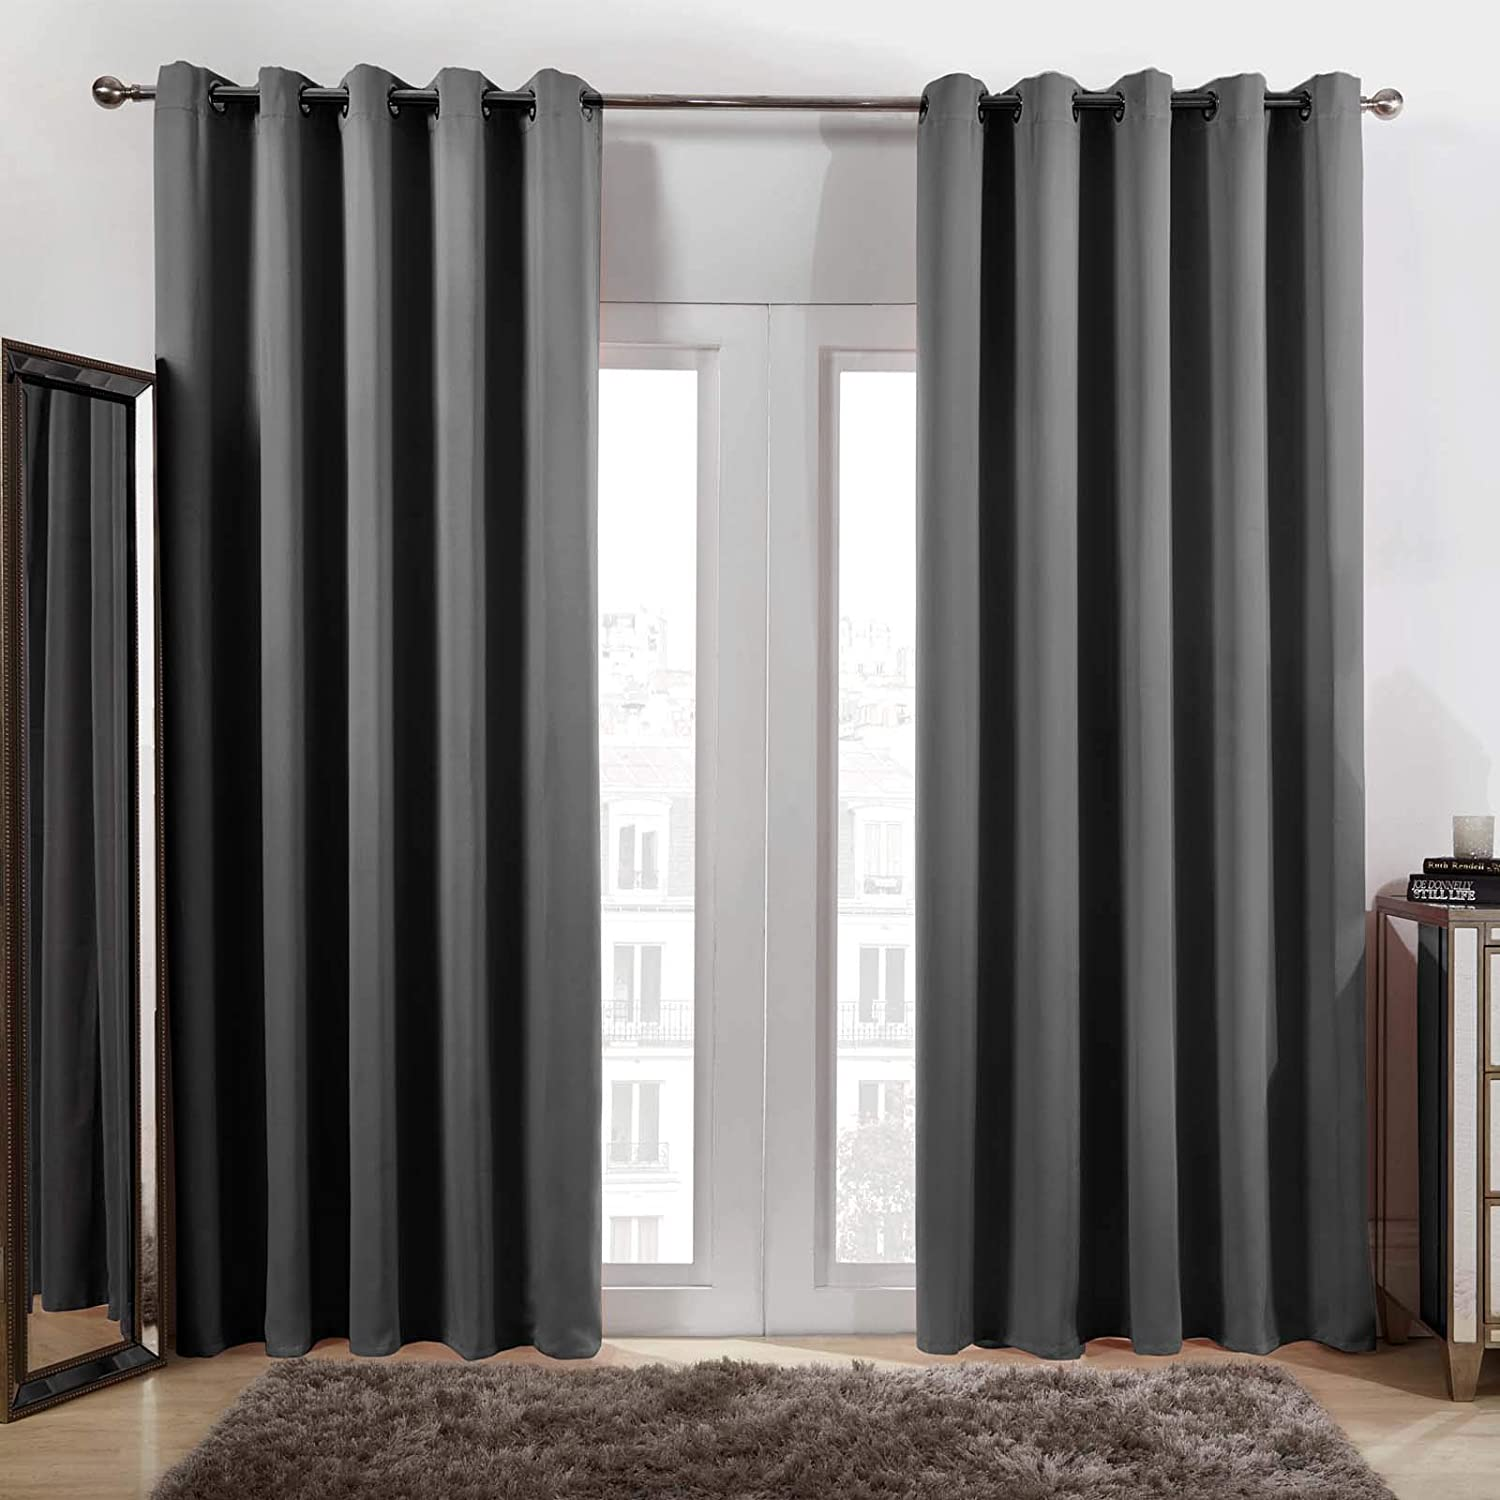 """Dreamscene Eyelet Blackout Curtains Set of 2 Thermal Ring Top Window Treatment Panels - Charcoal Grey, Width 66"""" x Drop 72"""" Charcoal Grey 66 Inch Wide x 72 Inch Drop"""